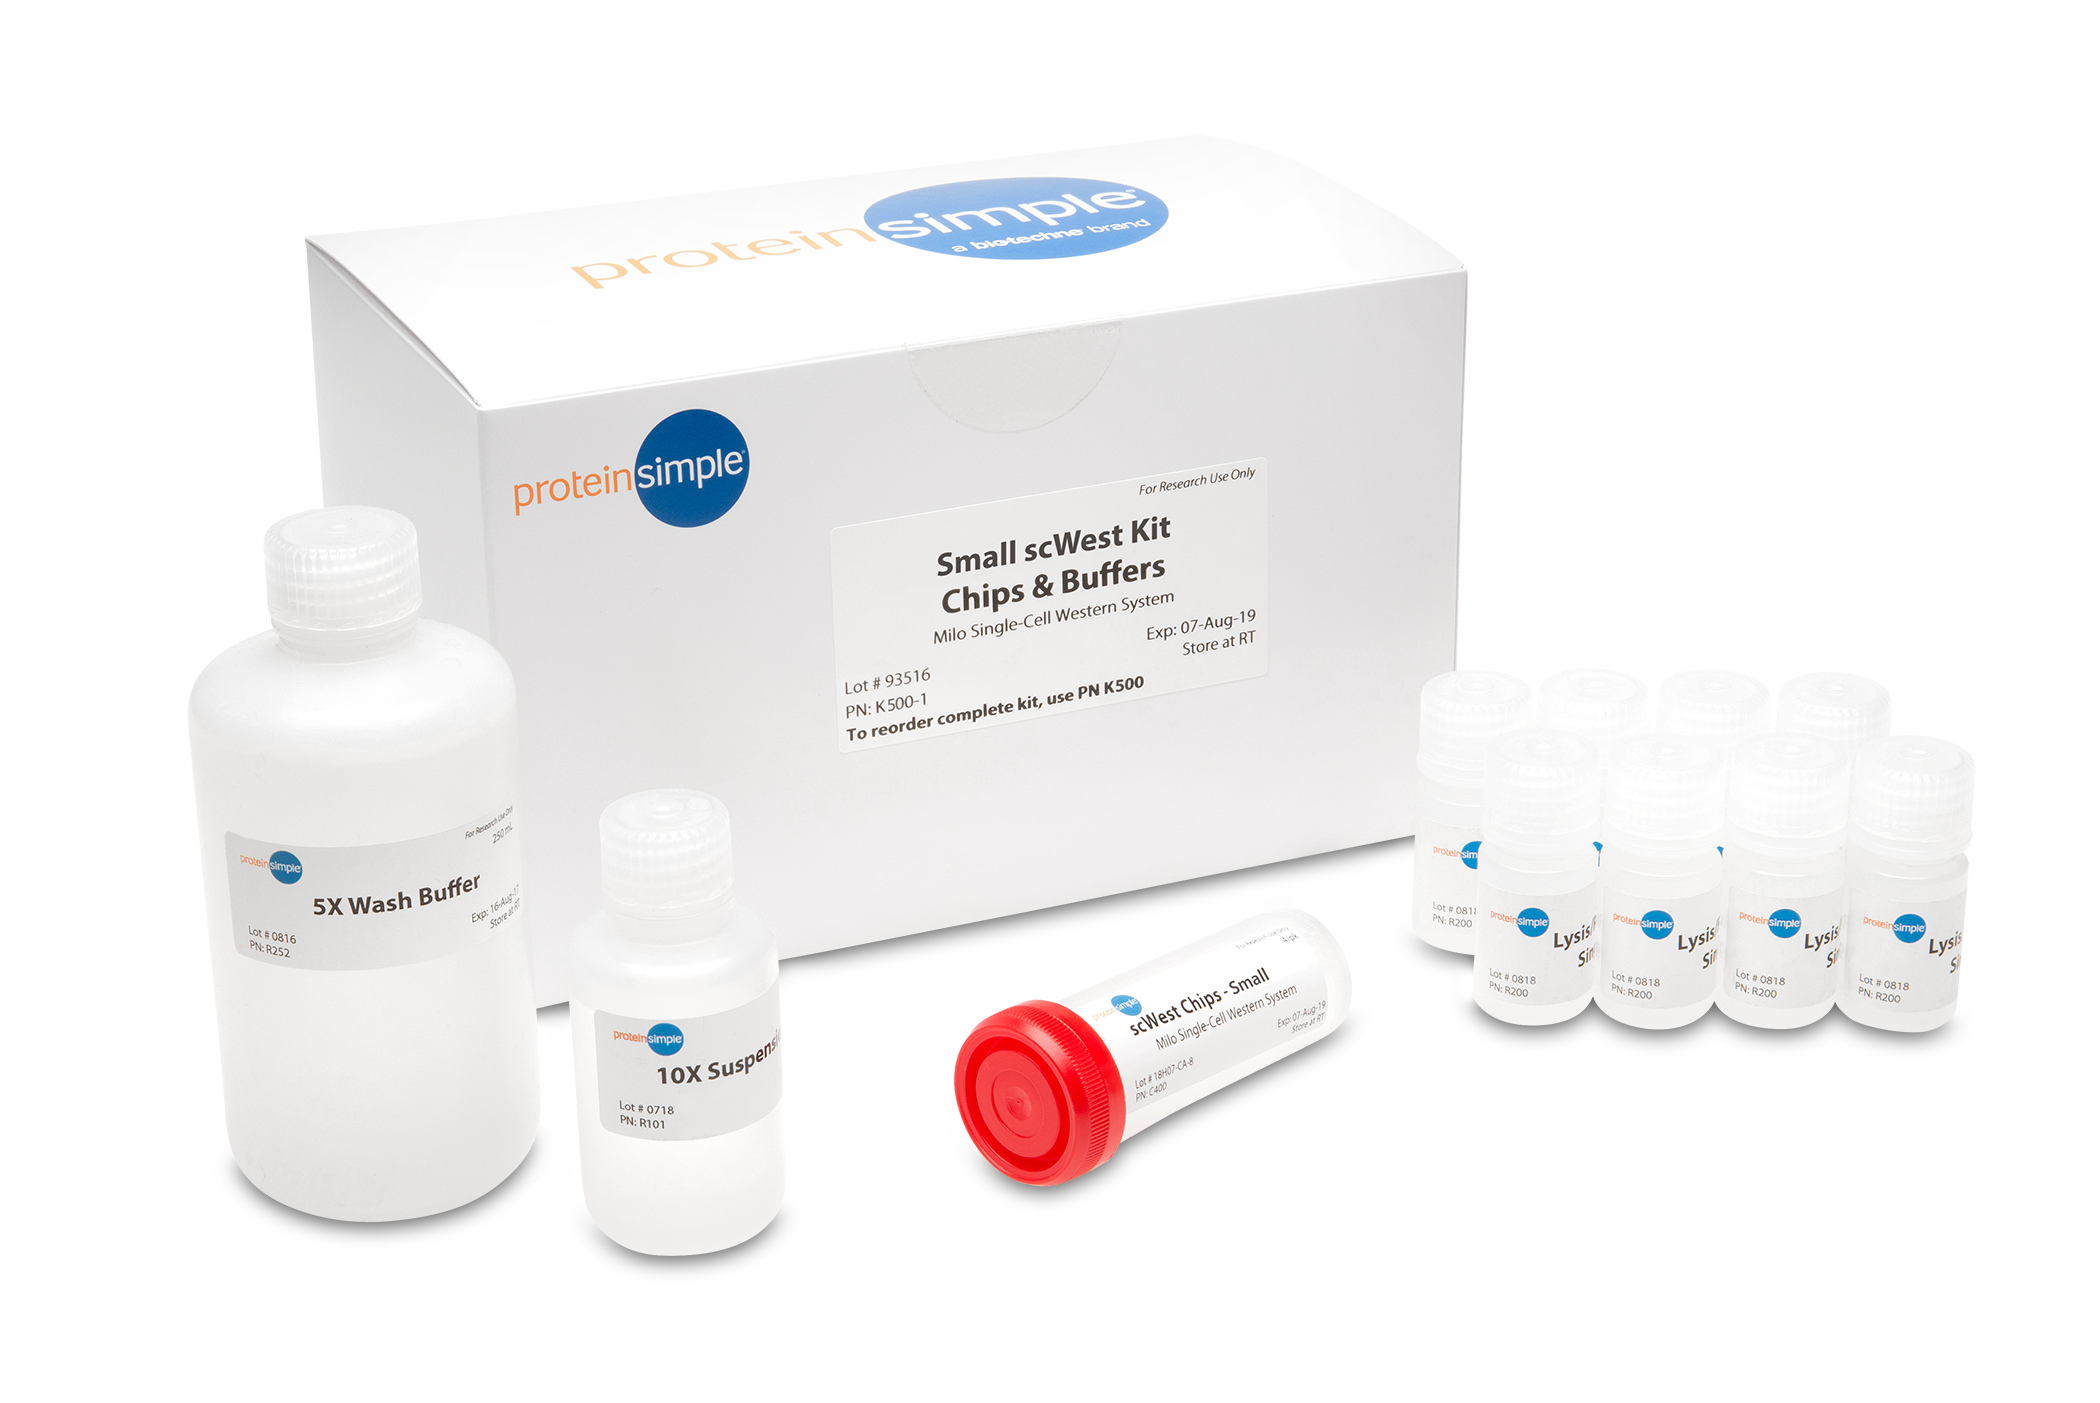 ProteinSimple Small scWest Kit for Single-Cell Western